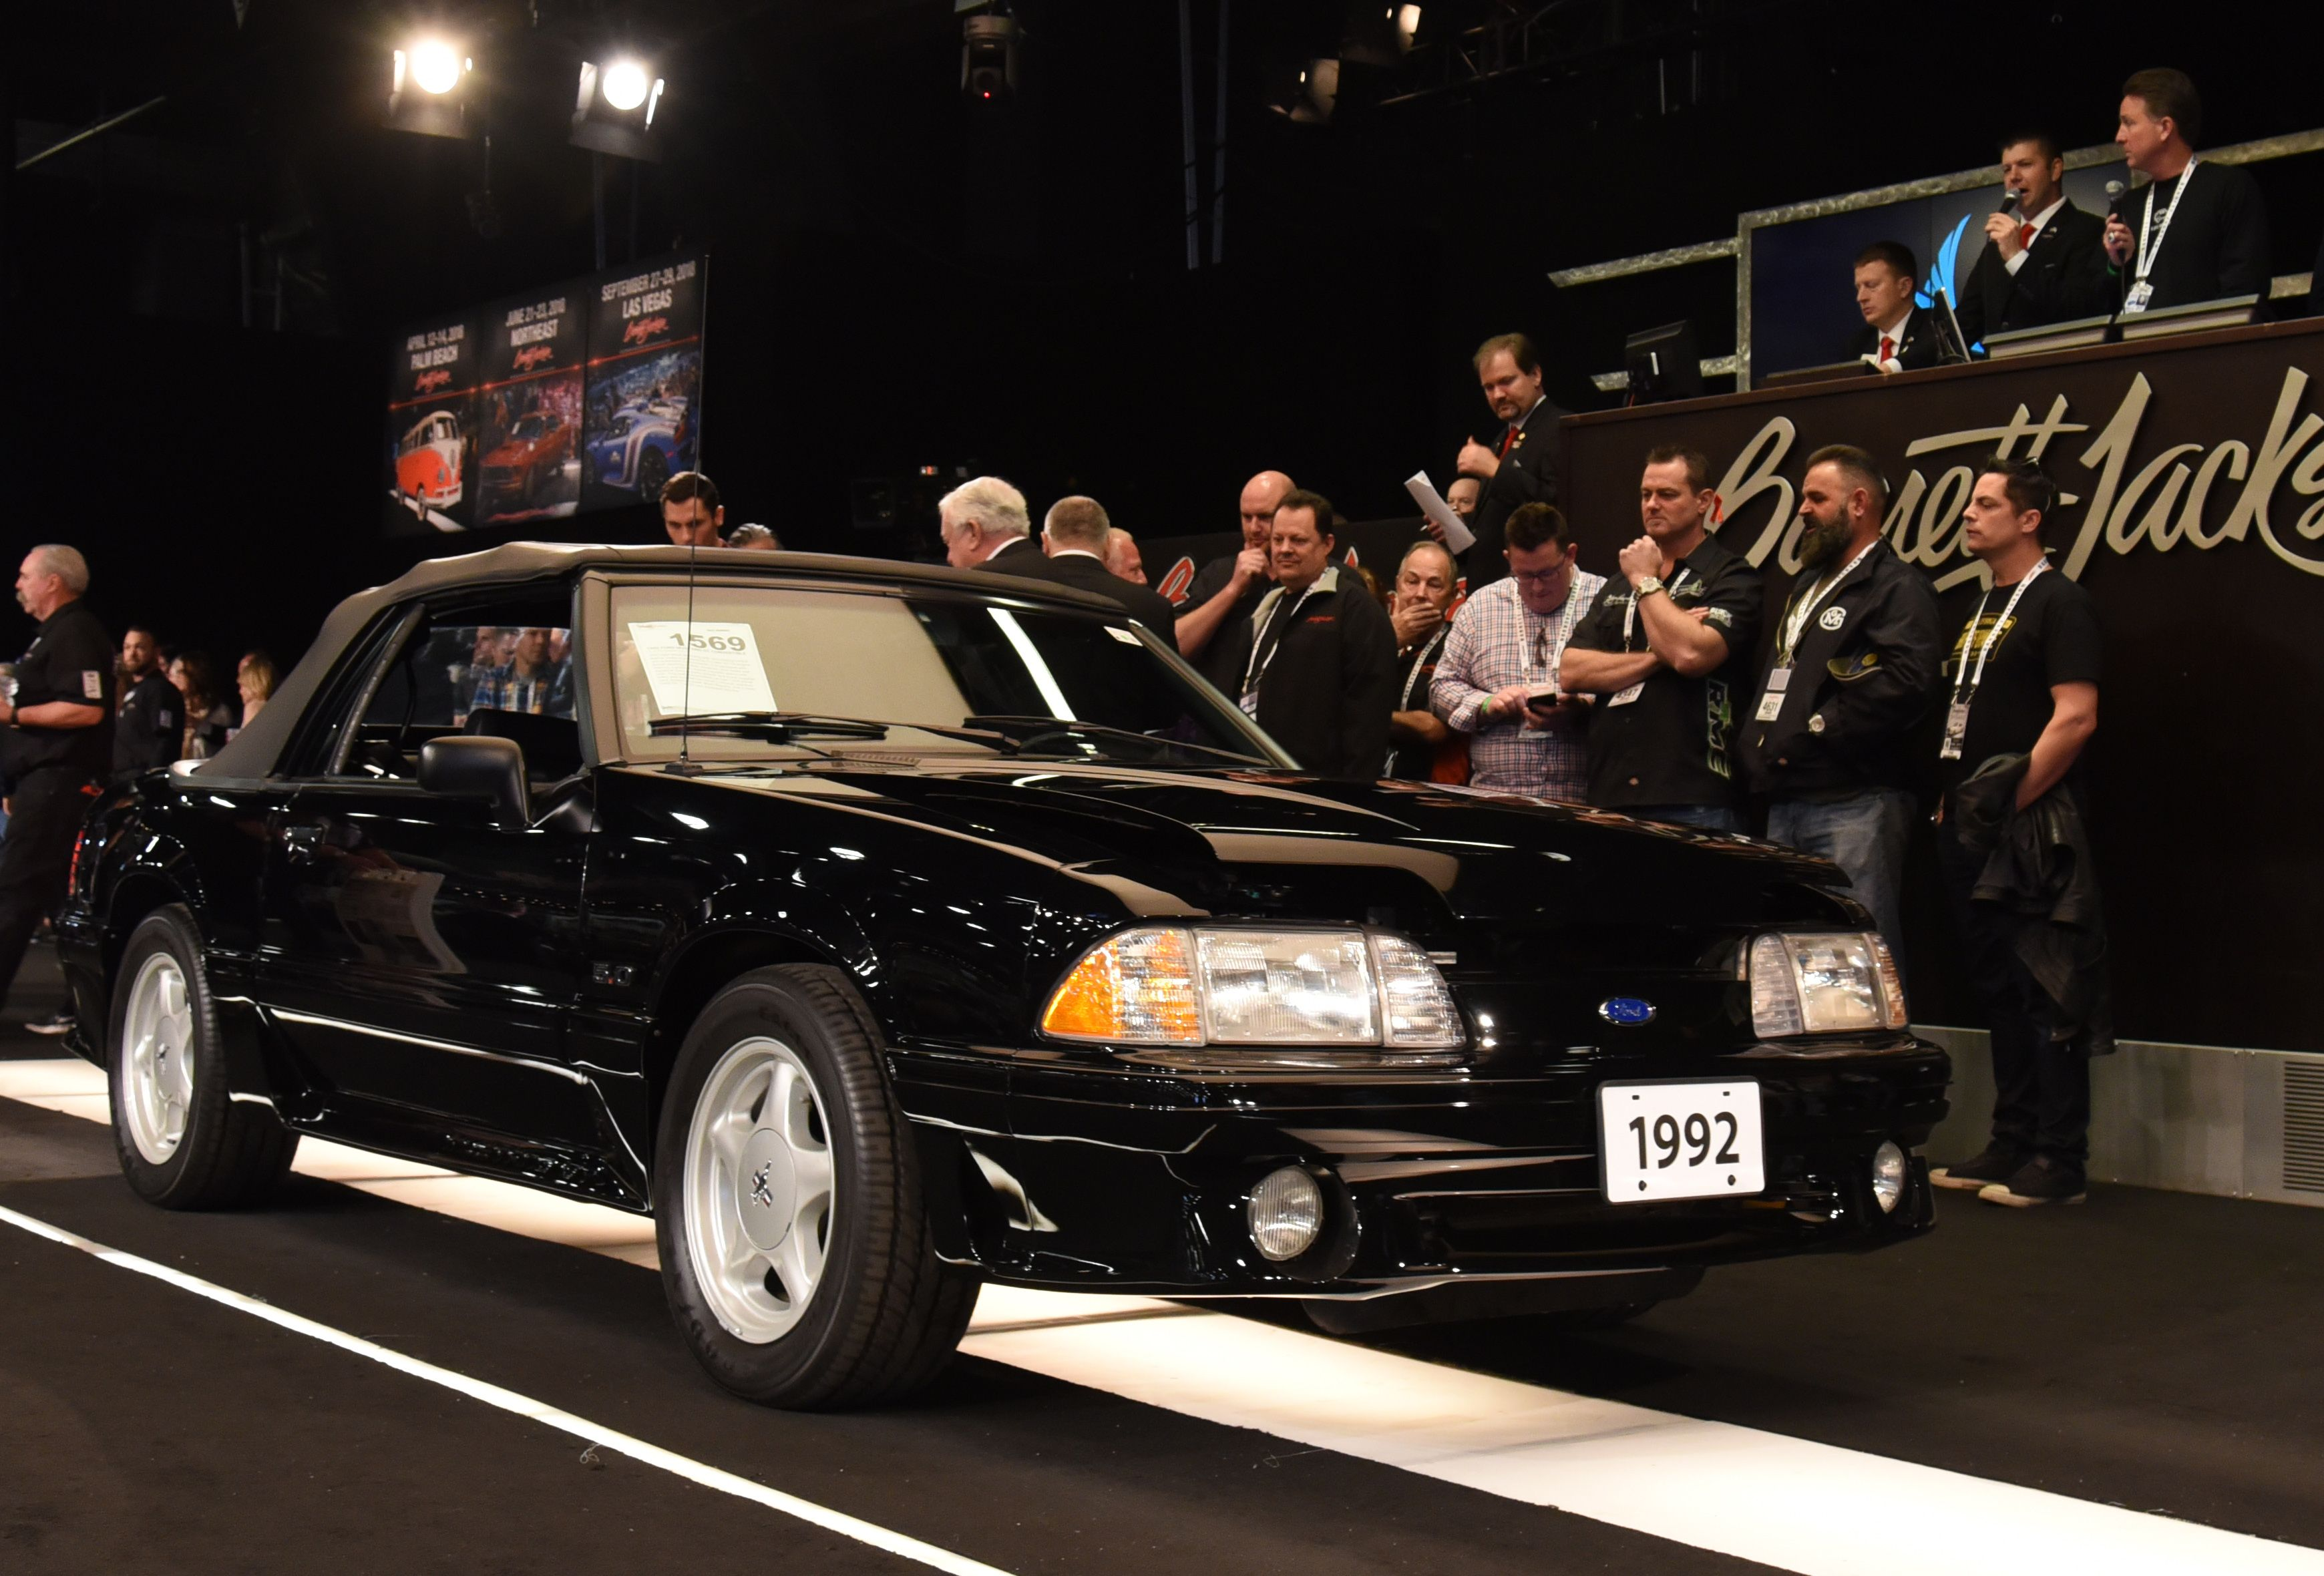 1992 Ford Mustang Gt Convertible This Triple Black Mustang With Articulating Lumbar Leather Seats Is Powered Ford Mustang Boss Best Muscle Cars Ford Mustang